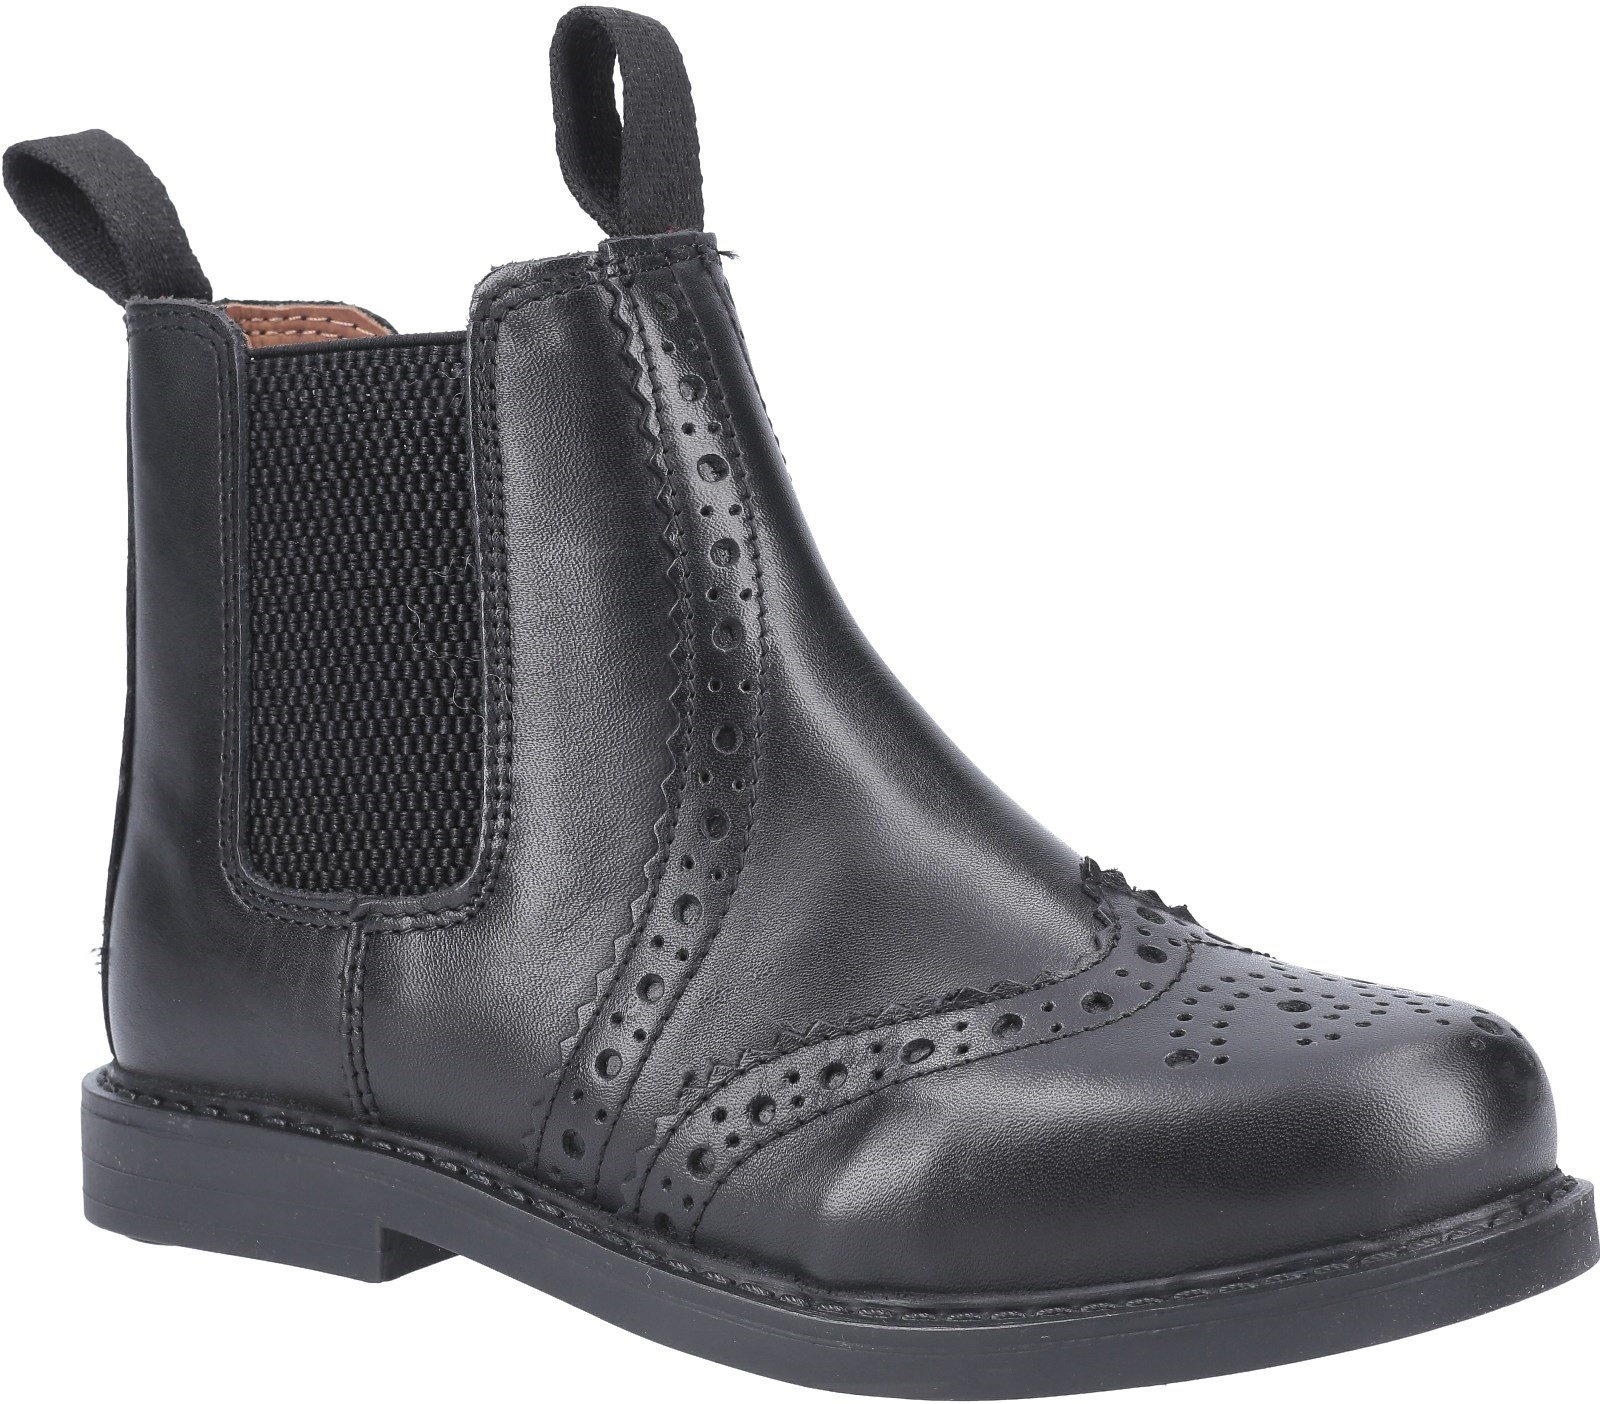 Cotswold Unisex Nympsfield Brogue Pull On Boots Multicolor 29270 - Black 10